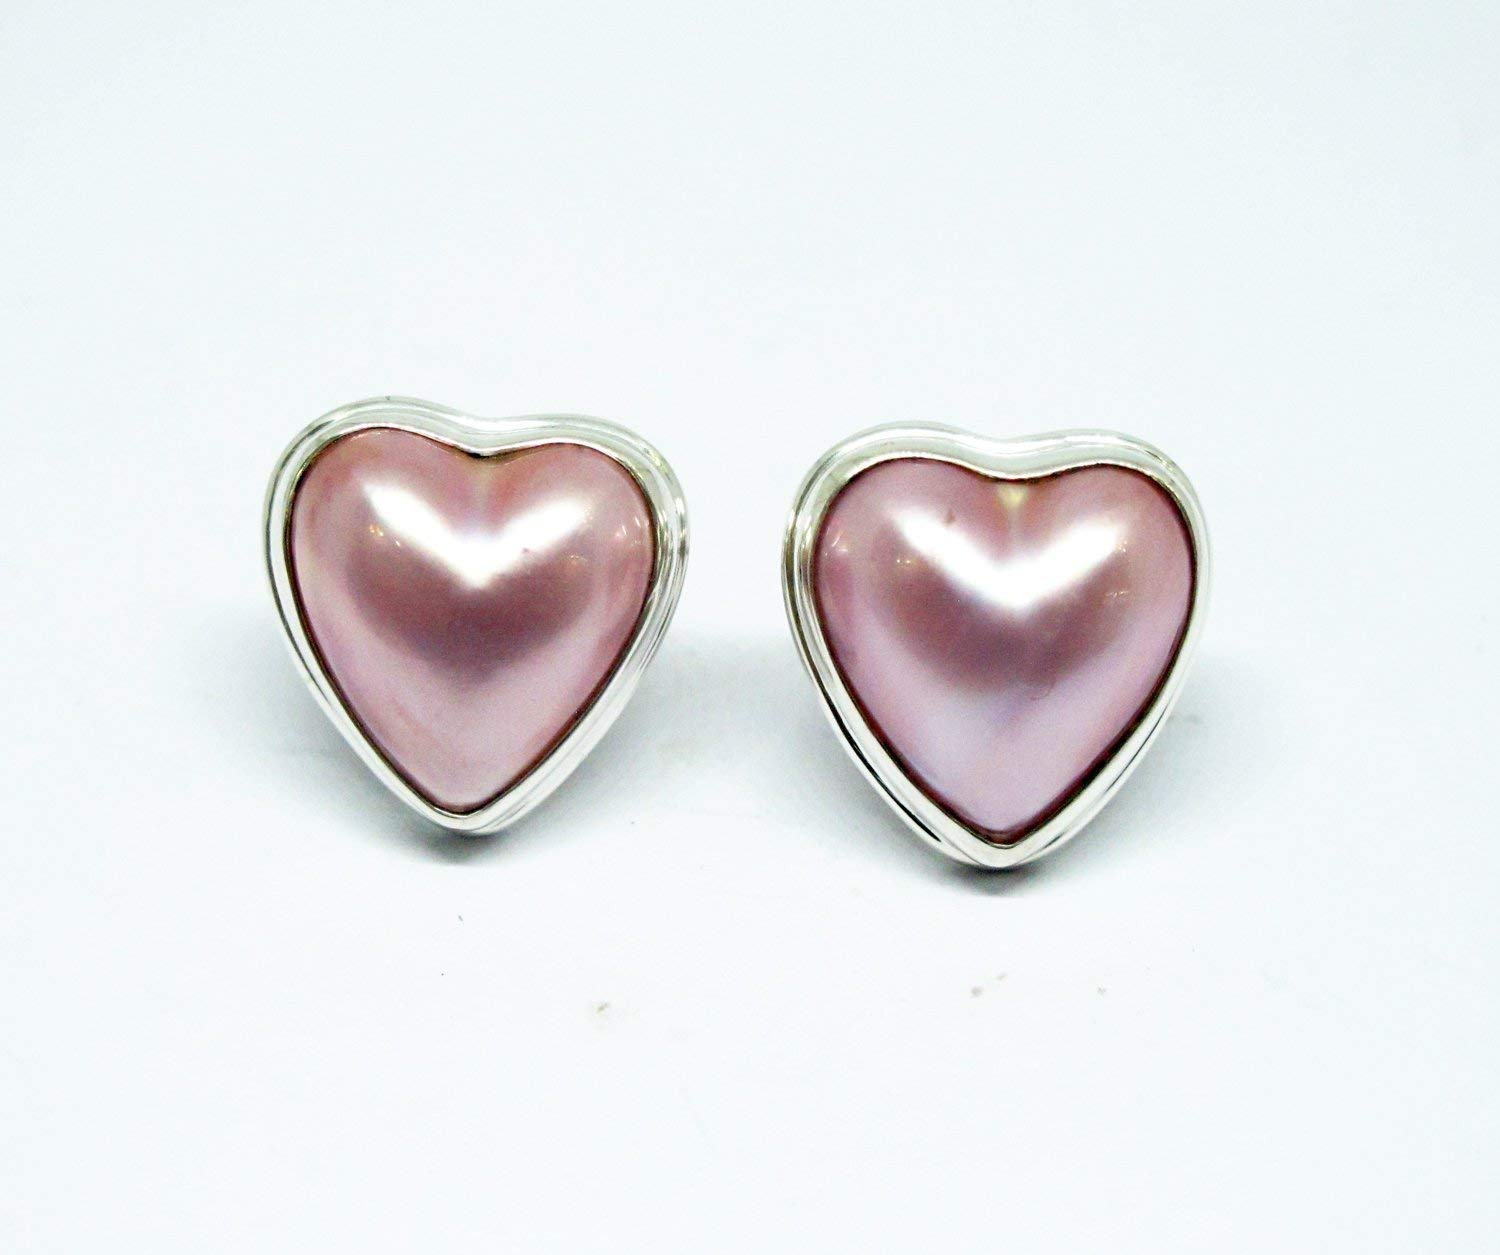 mabe pearl stud earrings with 925 sterling silver, heart shape mabe stud earrings, pink mabe pearl earrings,